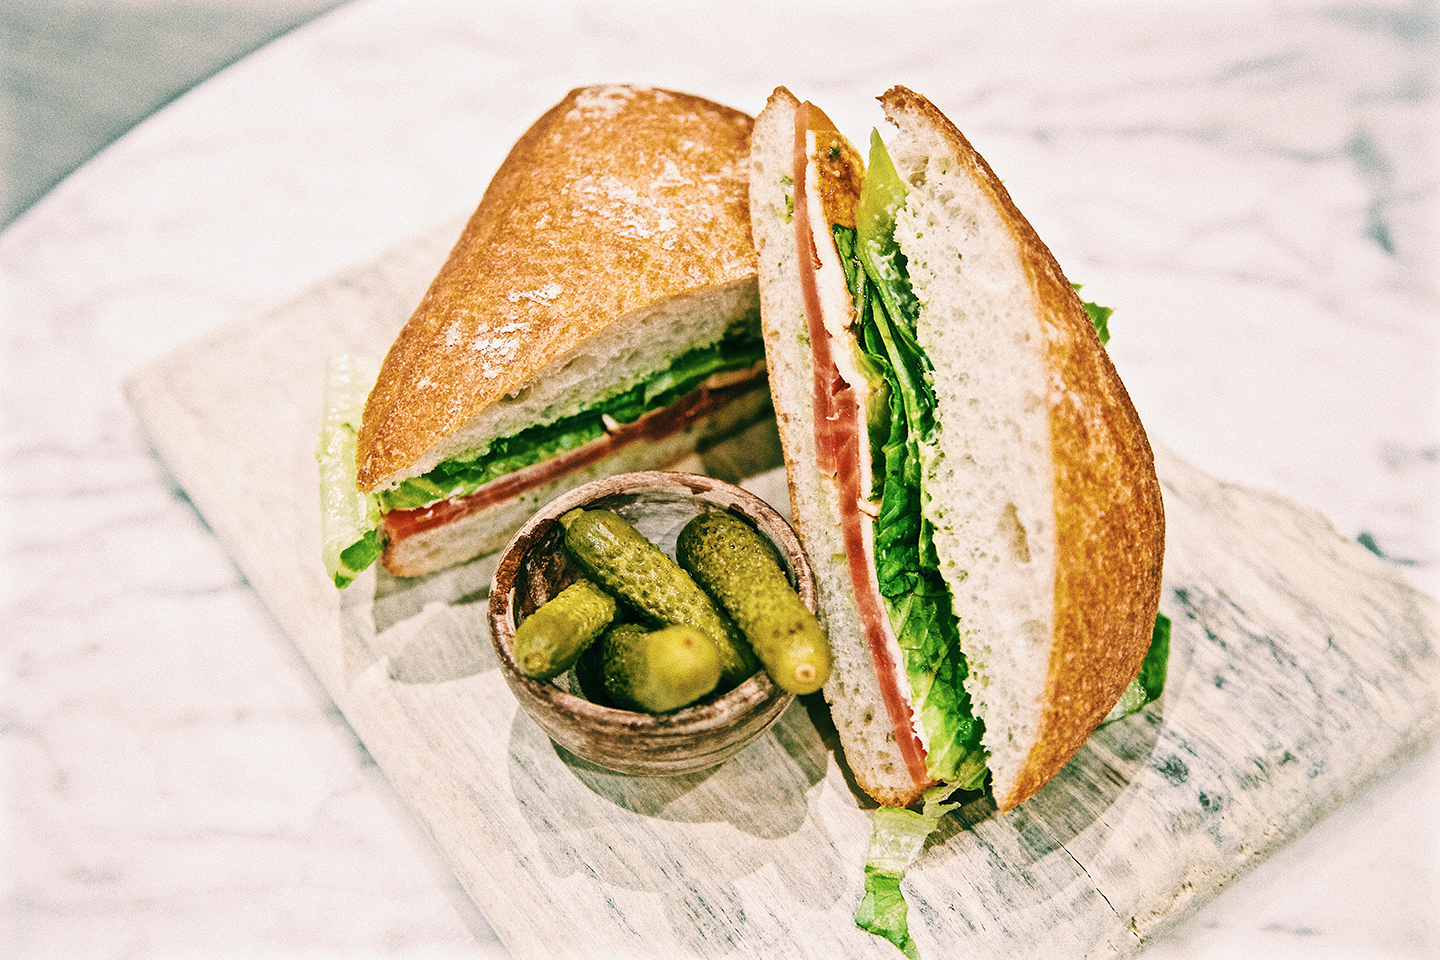 A sandwich on a plate with a bowl of cornichons